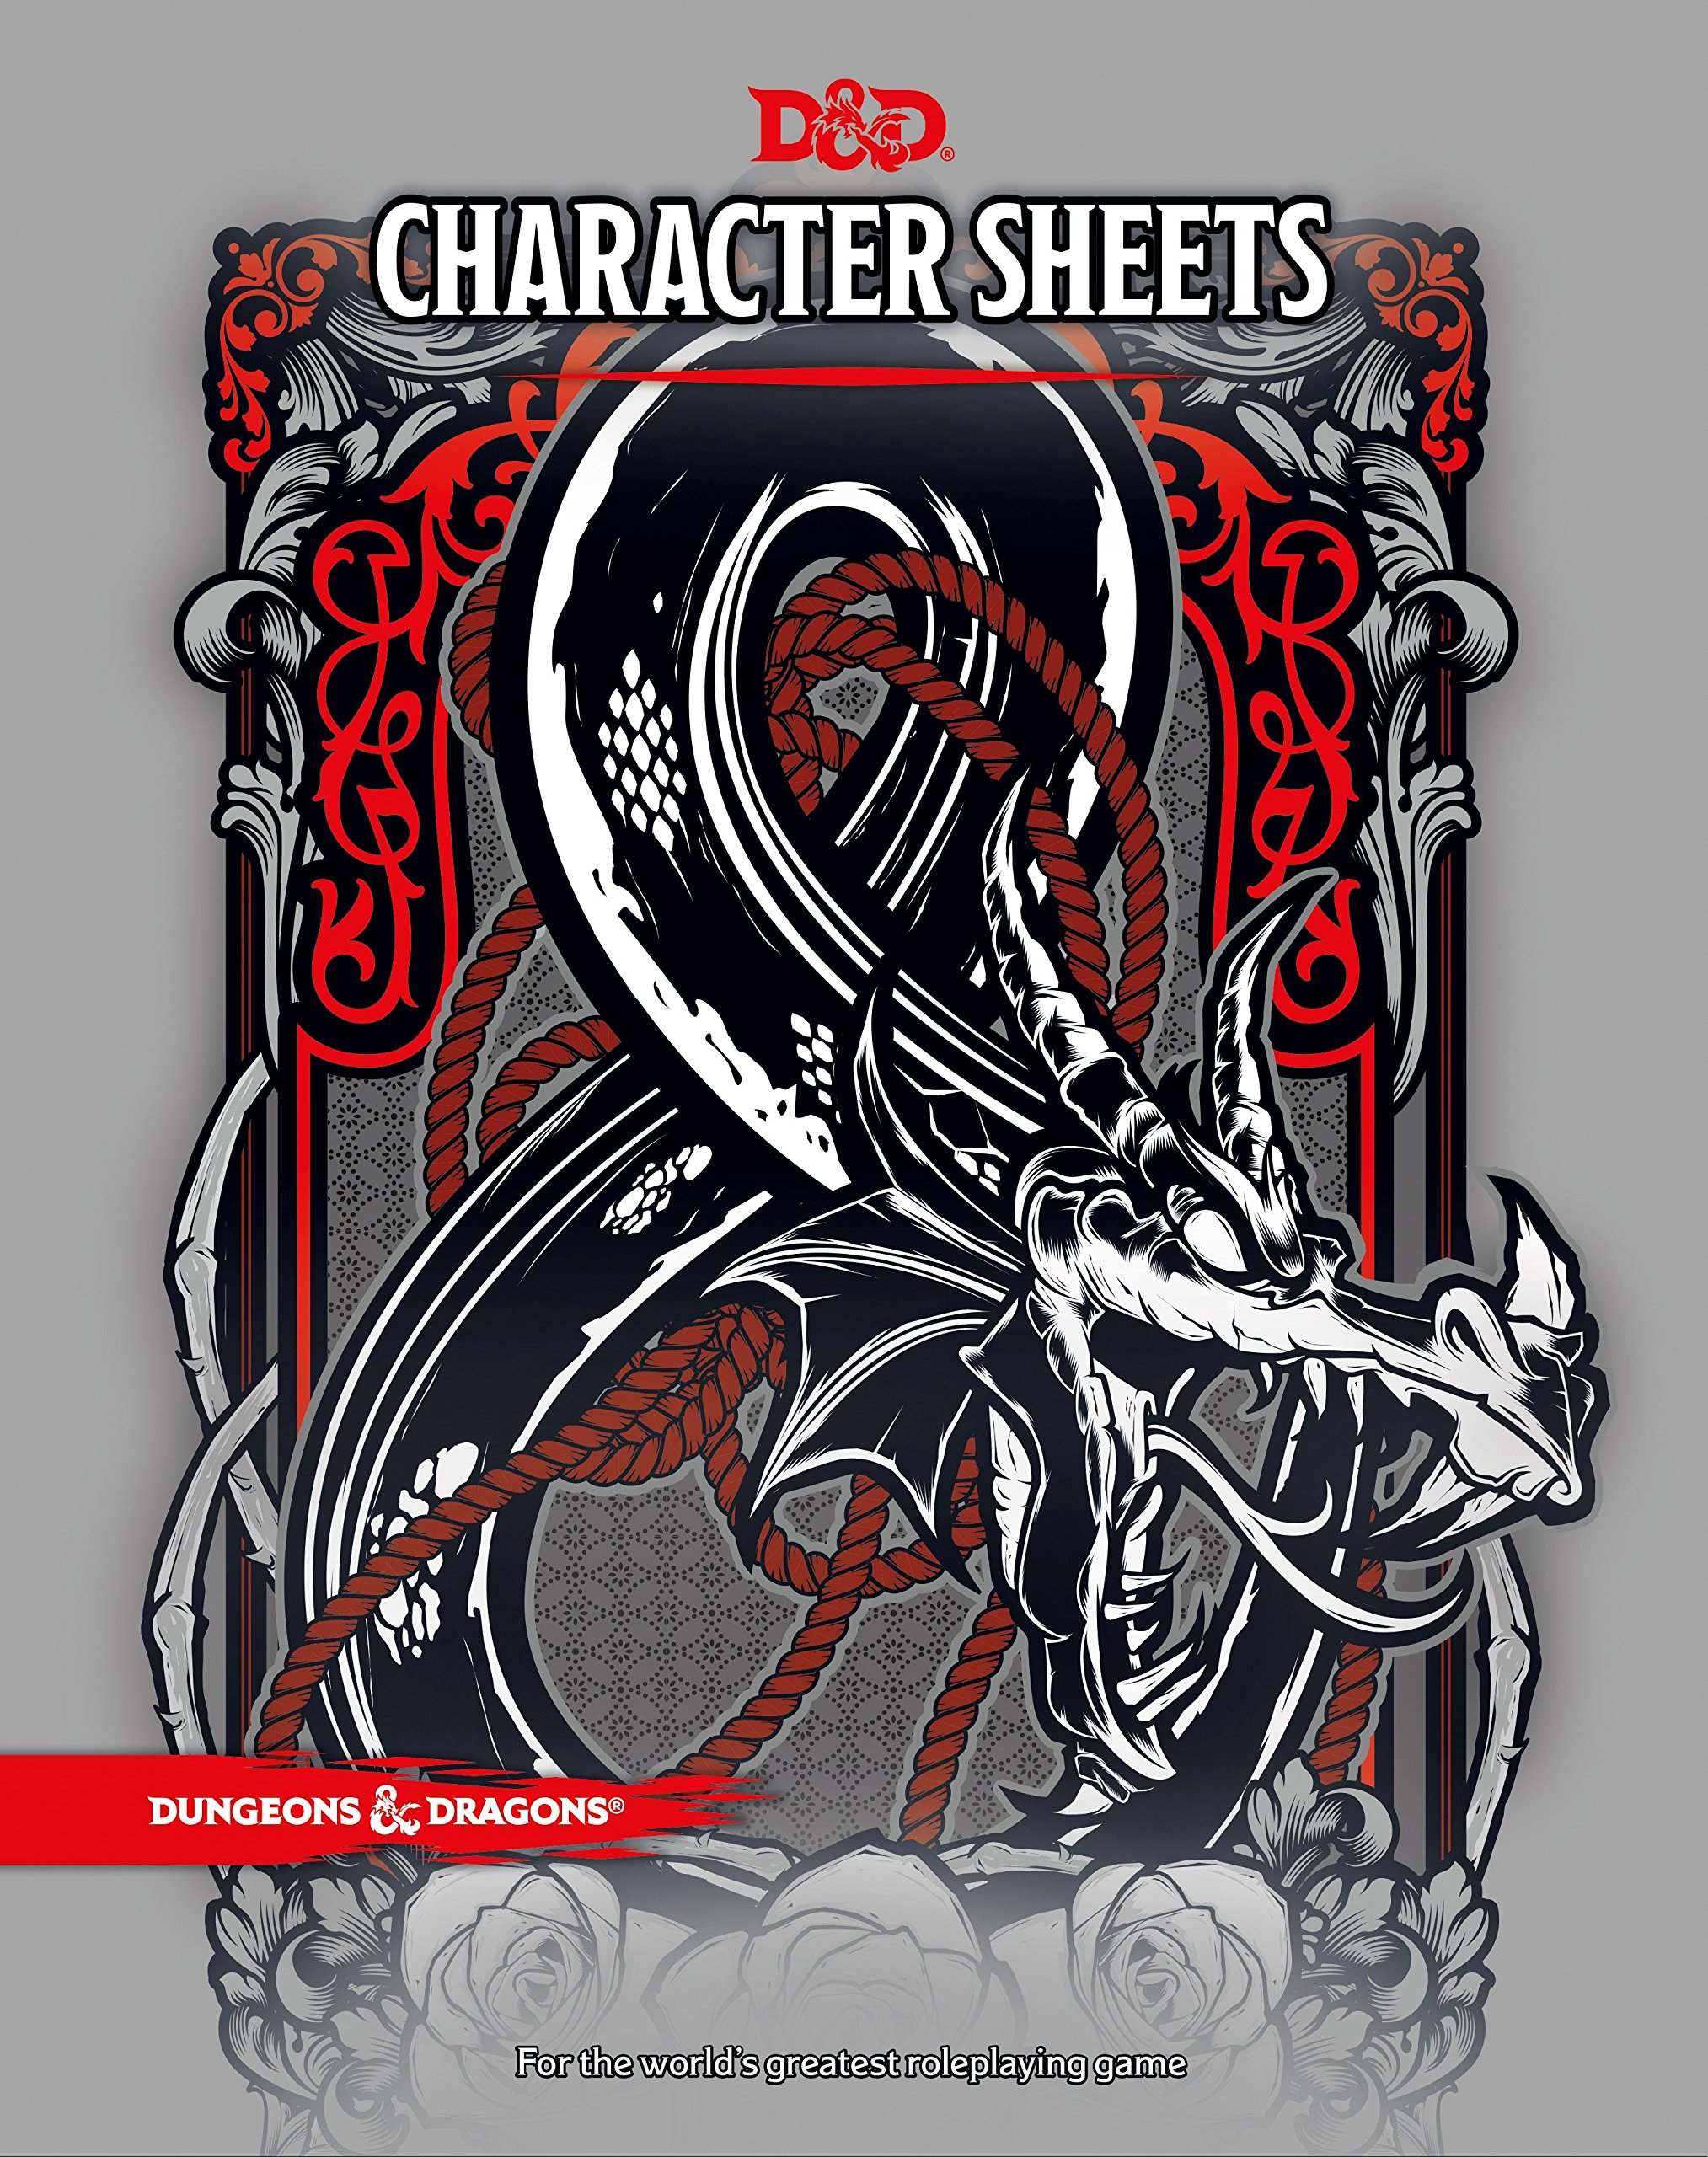 D&D Character Sheets (Dungeons & Dragons): Amazon.es: Wizards Rpg Team: Libros en idiomas extranjeros